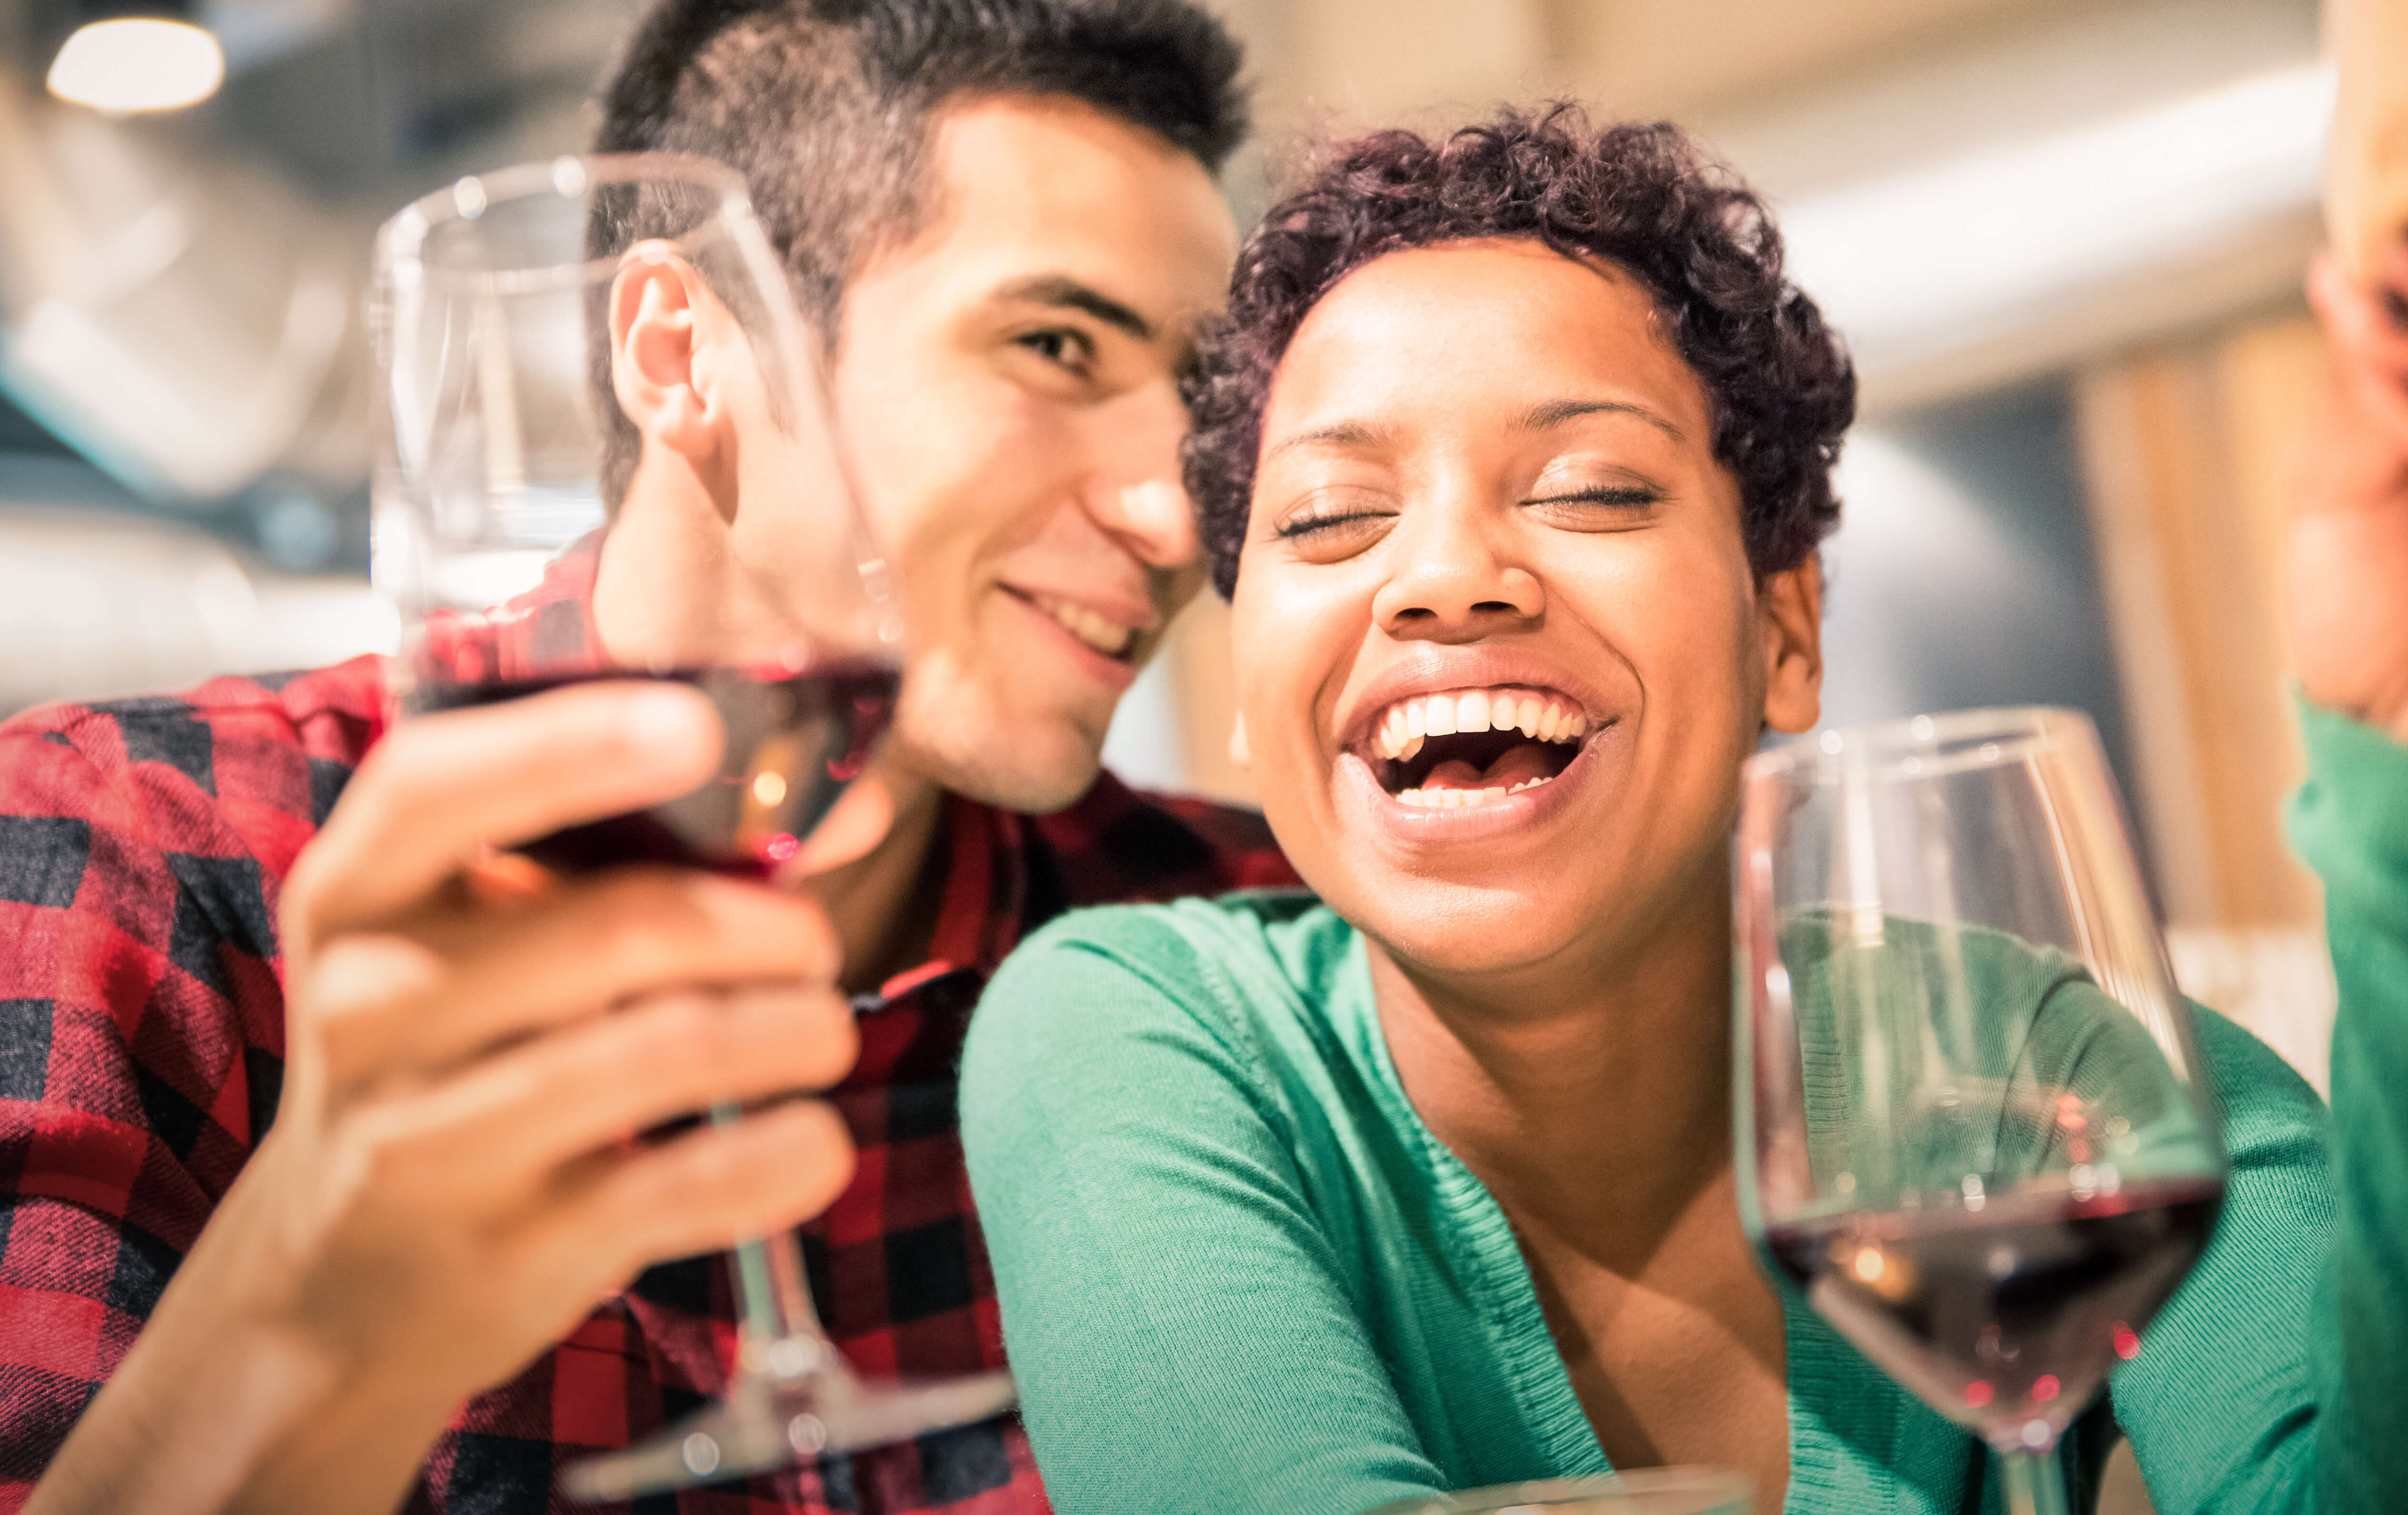 Happy Multiracial Couple Of Lover Drinking Red Wine At Fashion Restaurant - Handsome Man Whispers Soft Kisses In Beautiful Woman Ear - Relationship Concept With Boyfriend And Girlfriend On Warm Filter